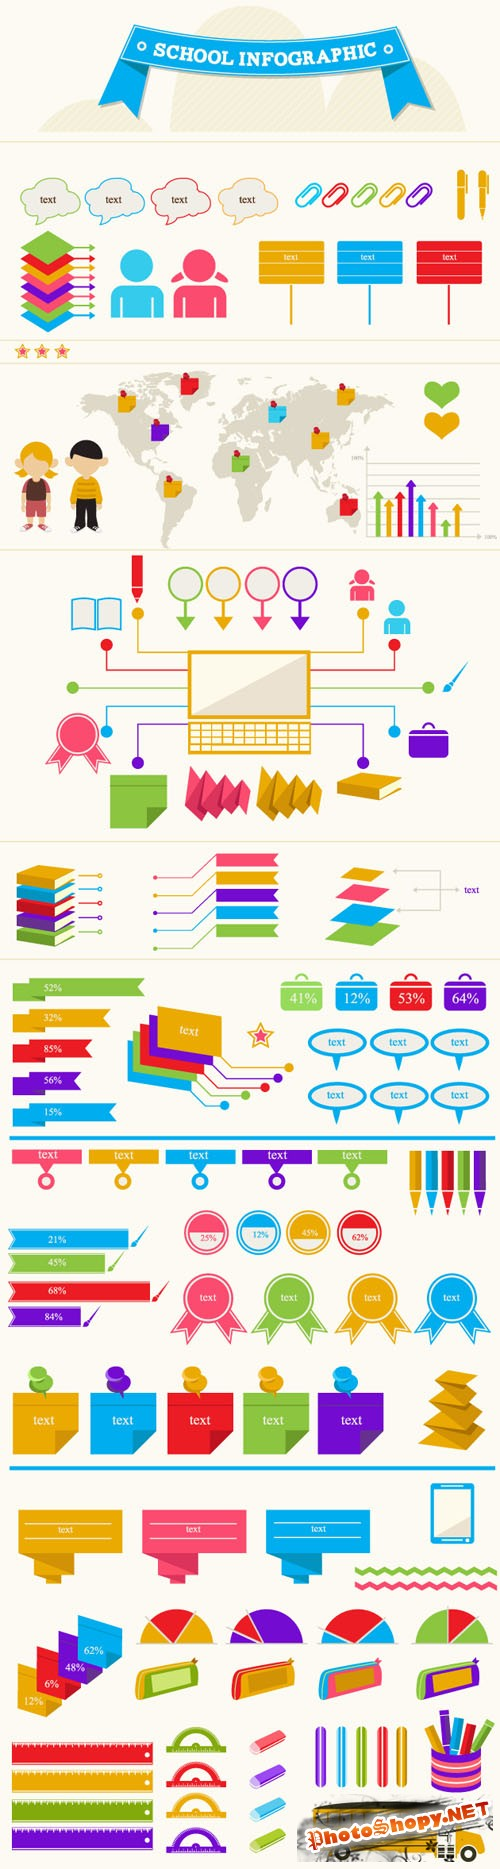 School Infographic Vector Illustrations